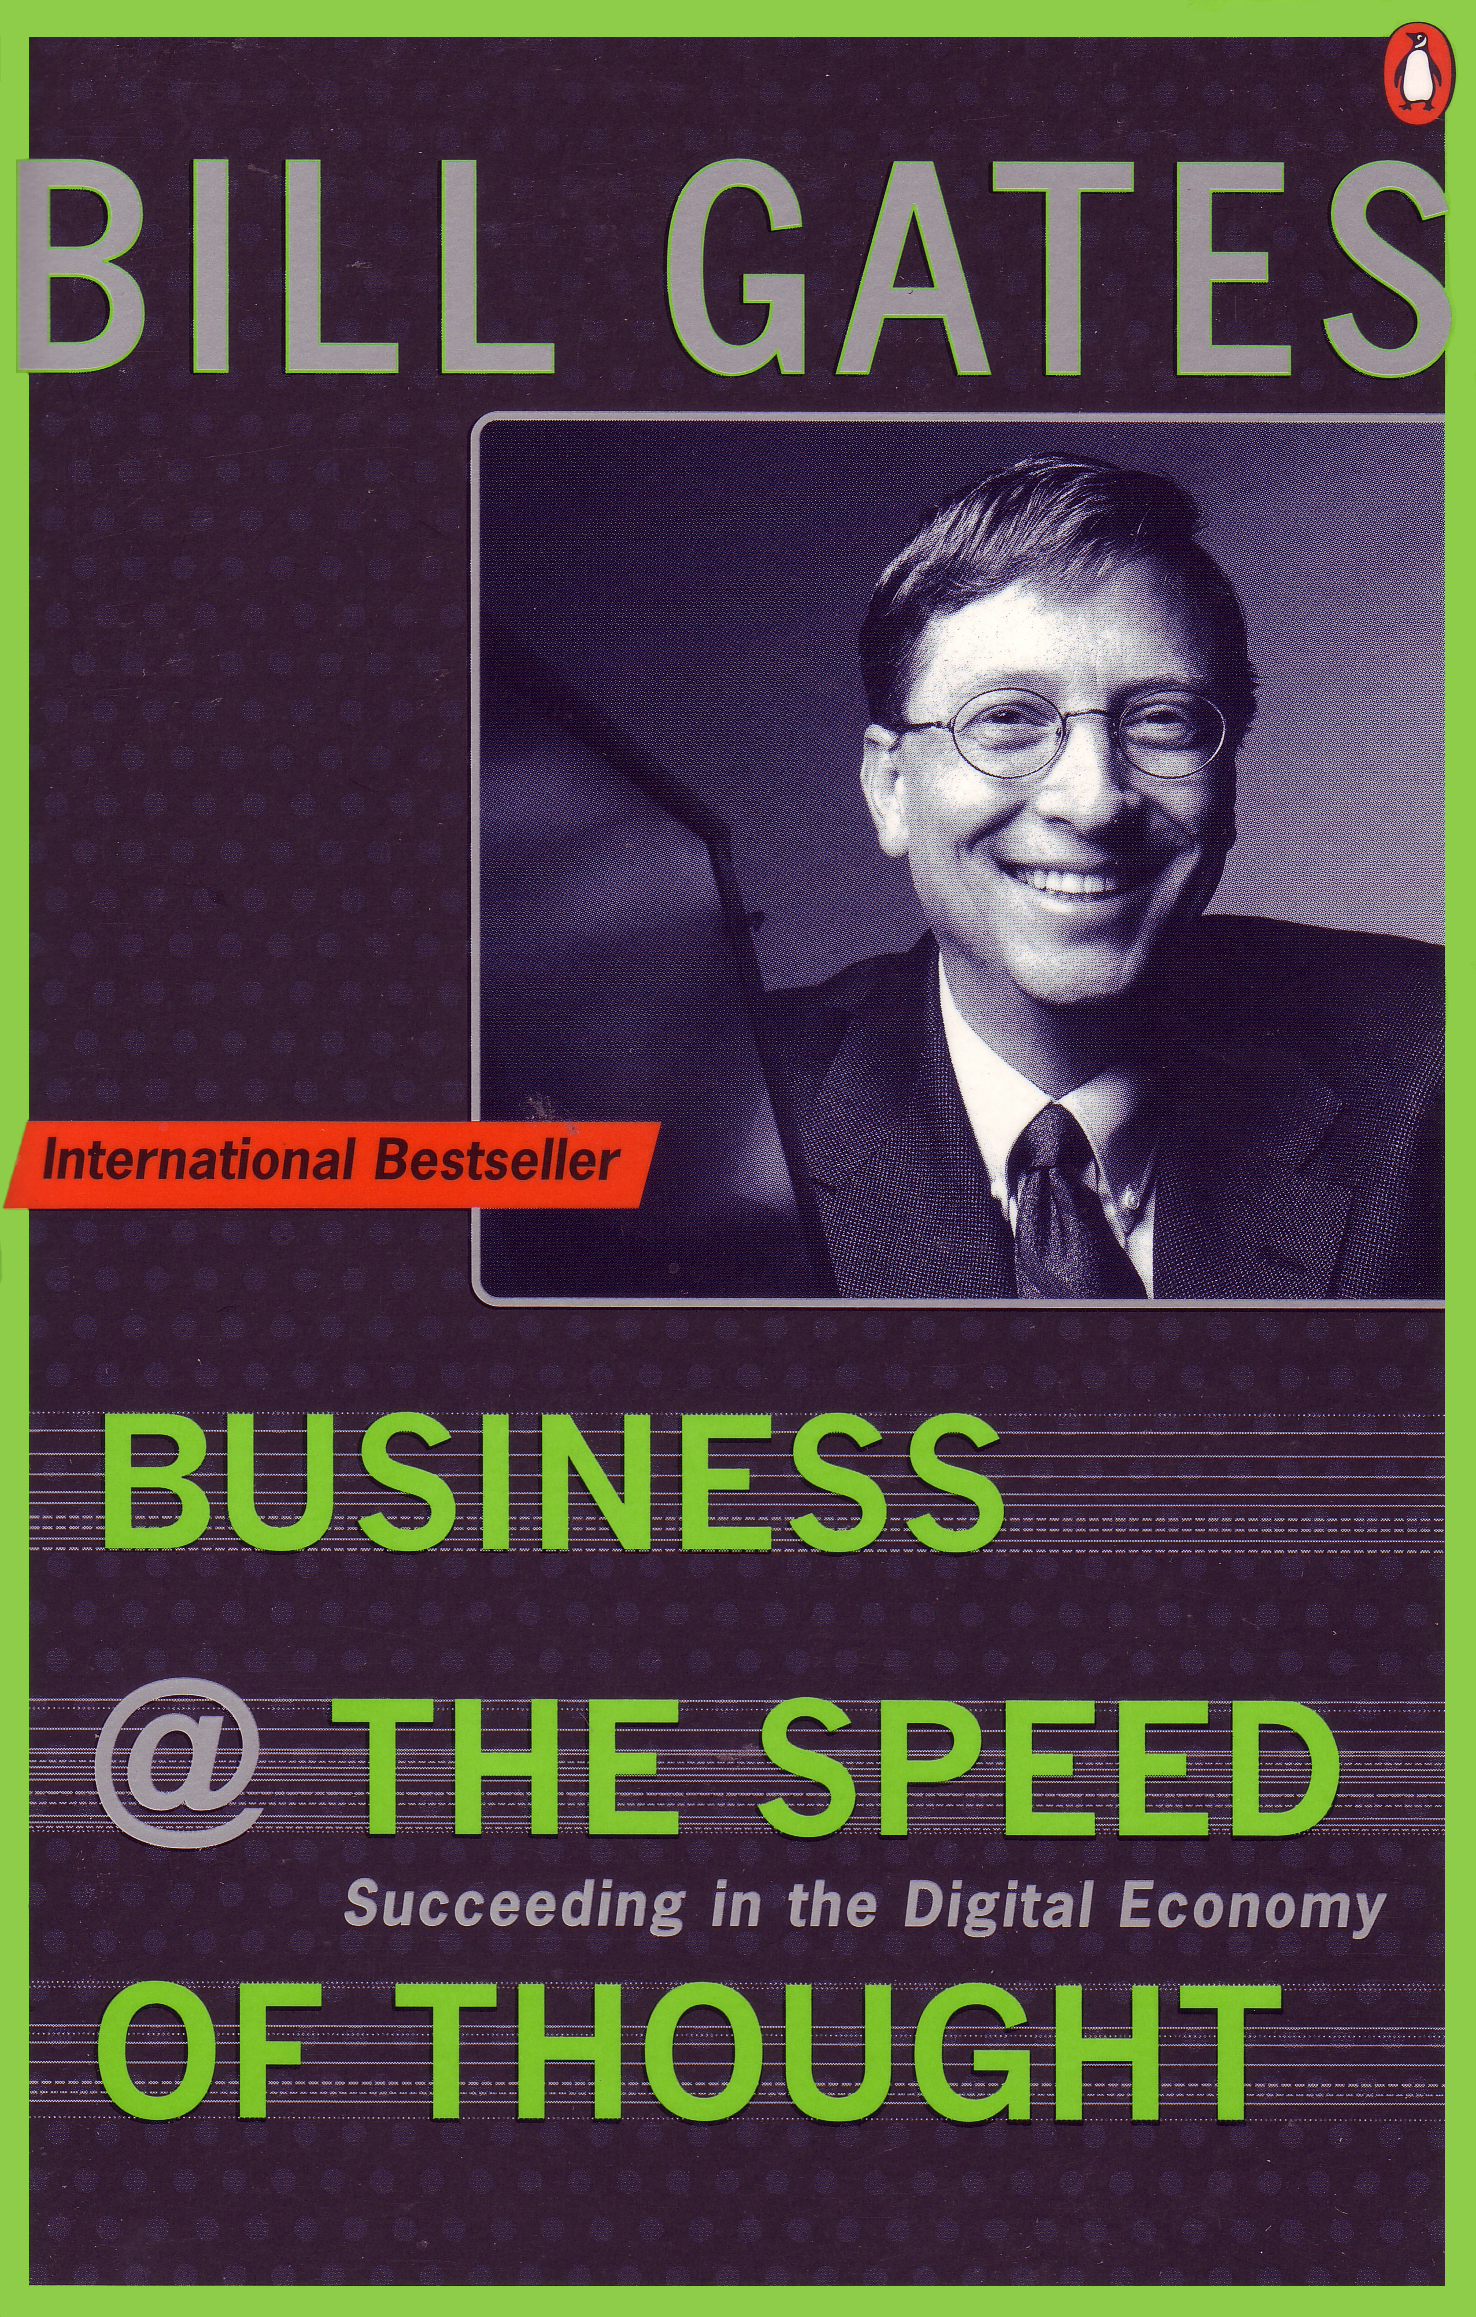 business at the speed of thought Read online or download for free graded reader ebook business at the speed of thought by bill gates of upper-intermediate level you can download in epub, mobi, fb2, rtf, txt.